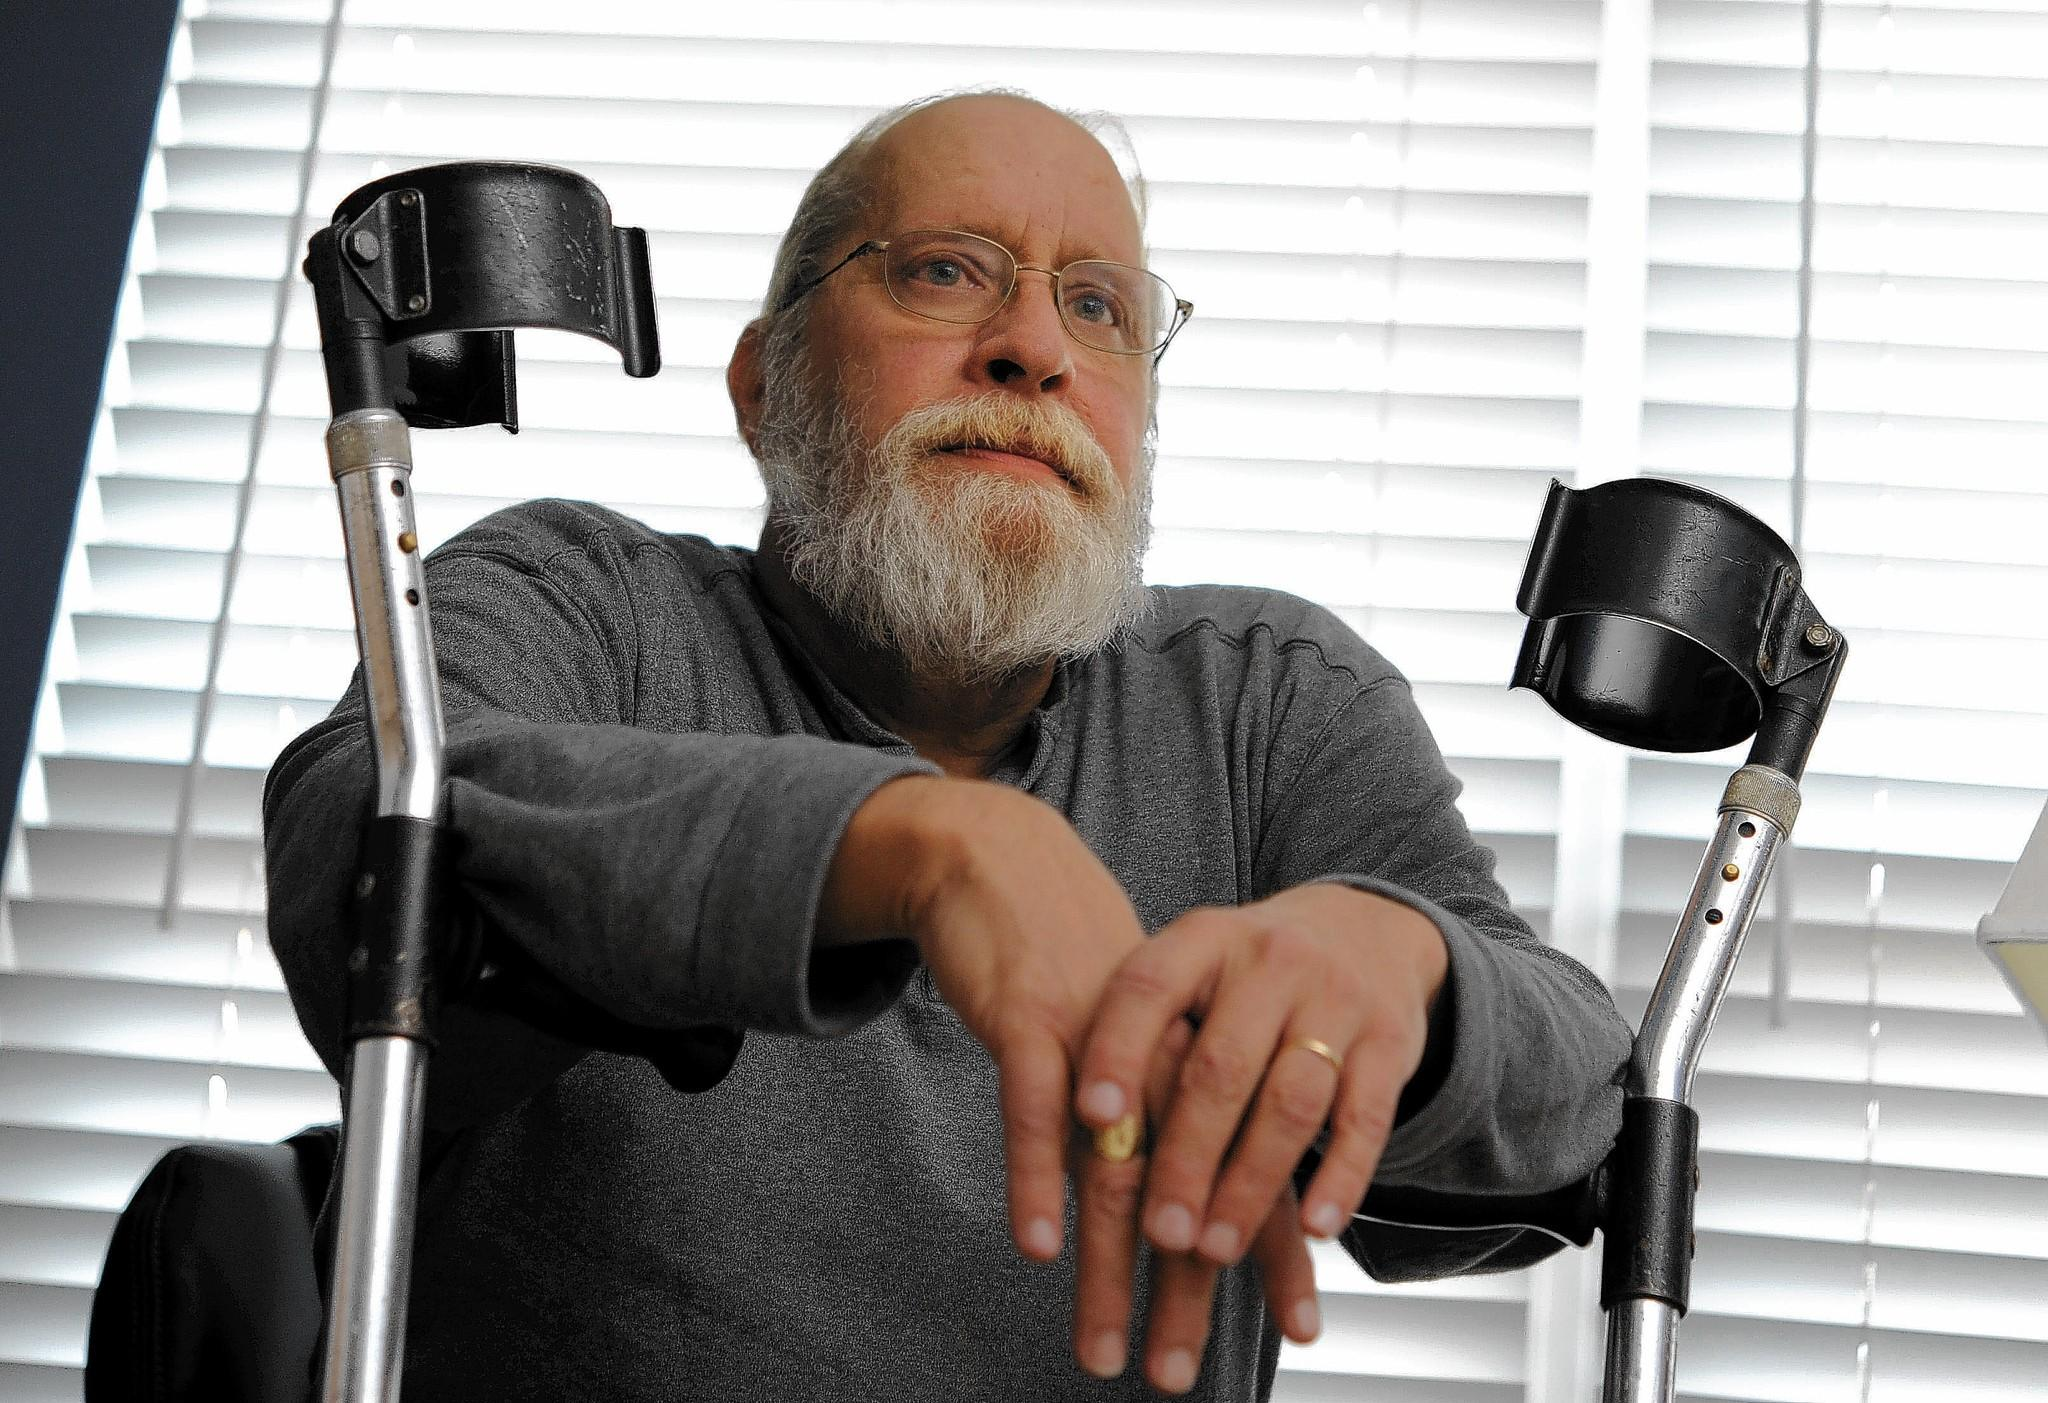 Barry Considine, 60, smokes marijuana to ease the pain of post-polio syndrome, the muscle weakness that afflicts polio victims as they age and now requires him to use a wheelchair.